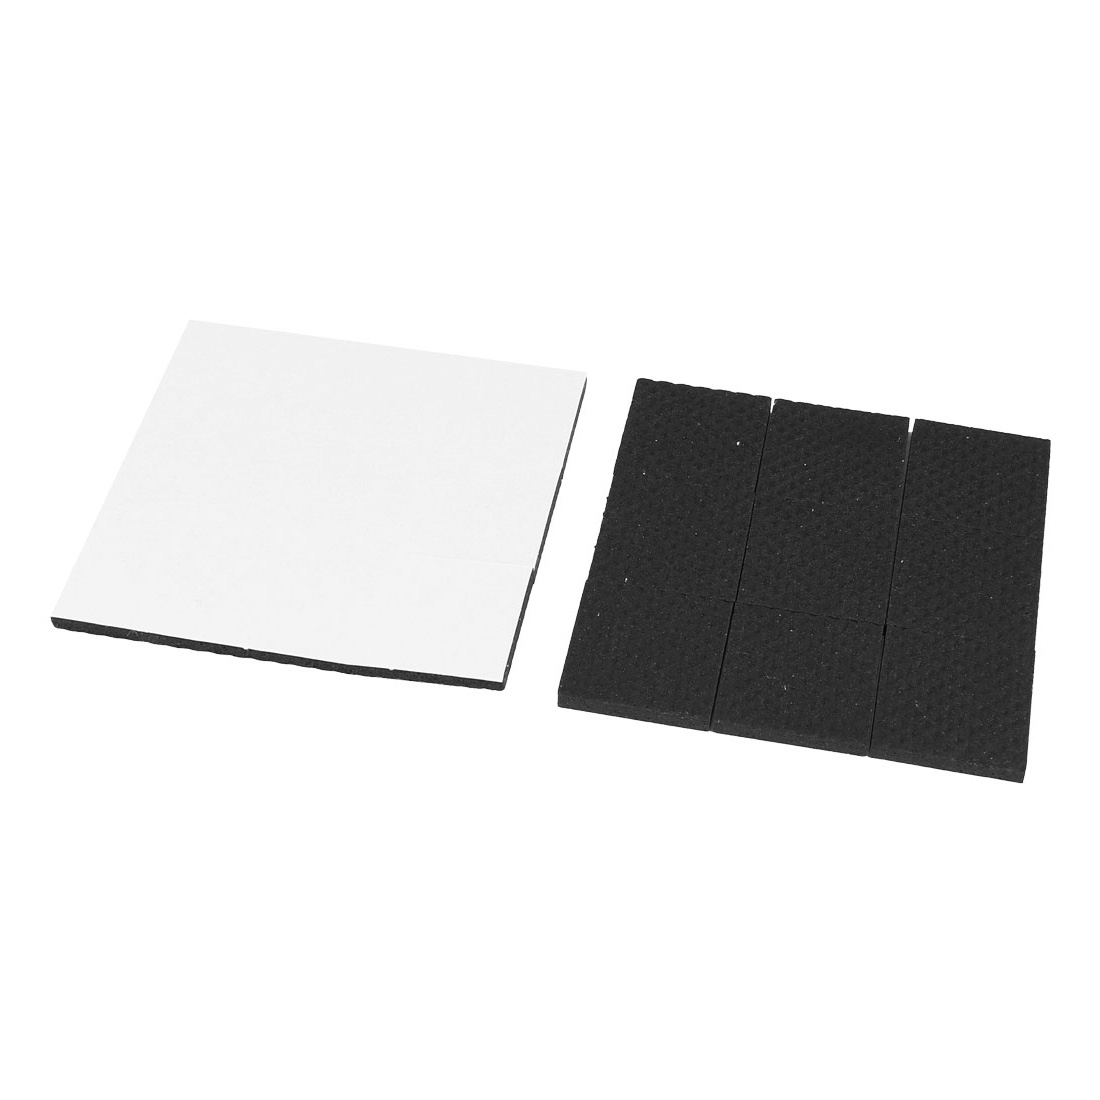 Square Shaped Black Foam Adhesive Furniture Protection Mat Pad 18 Pcs